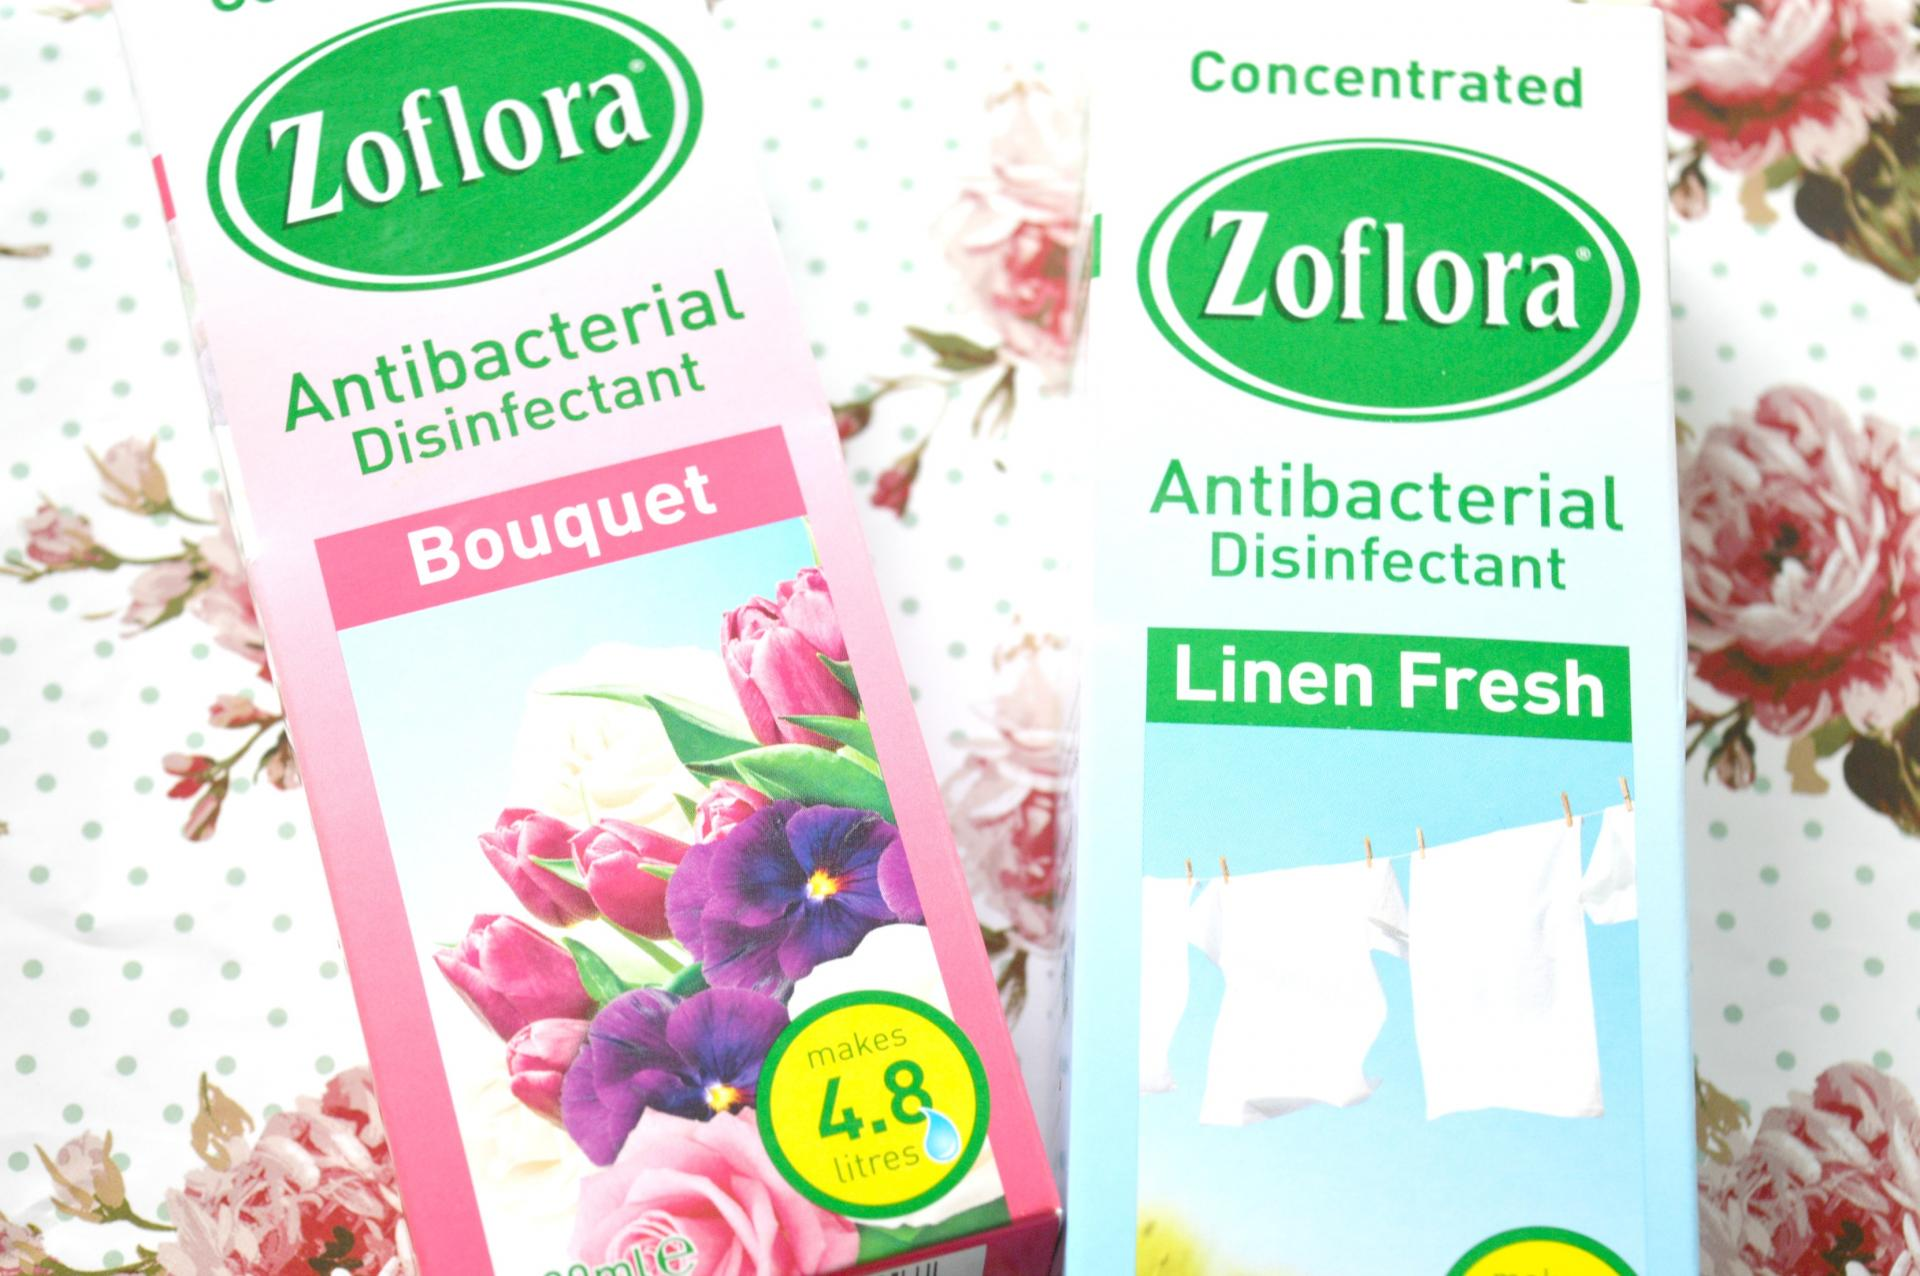 2 Excellent Zoflora Fragrances You Need To Try: Bouquet and Linen Fresh